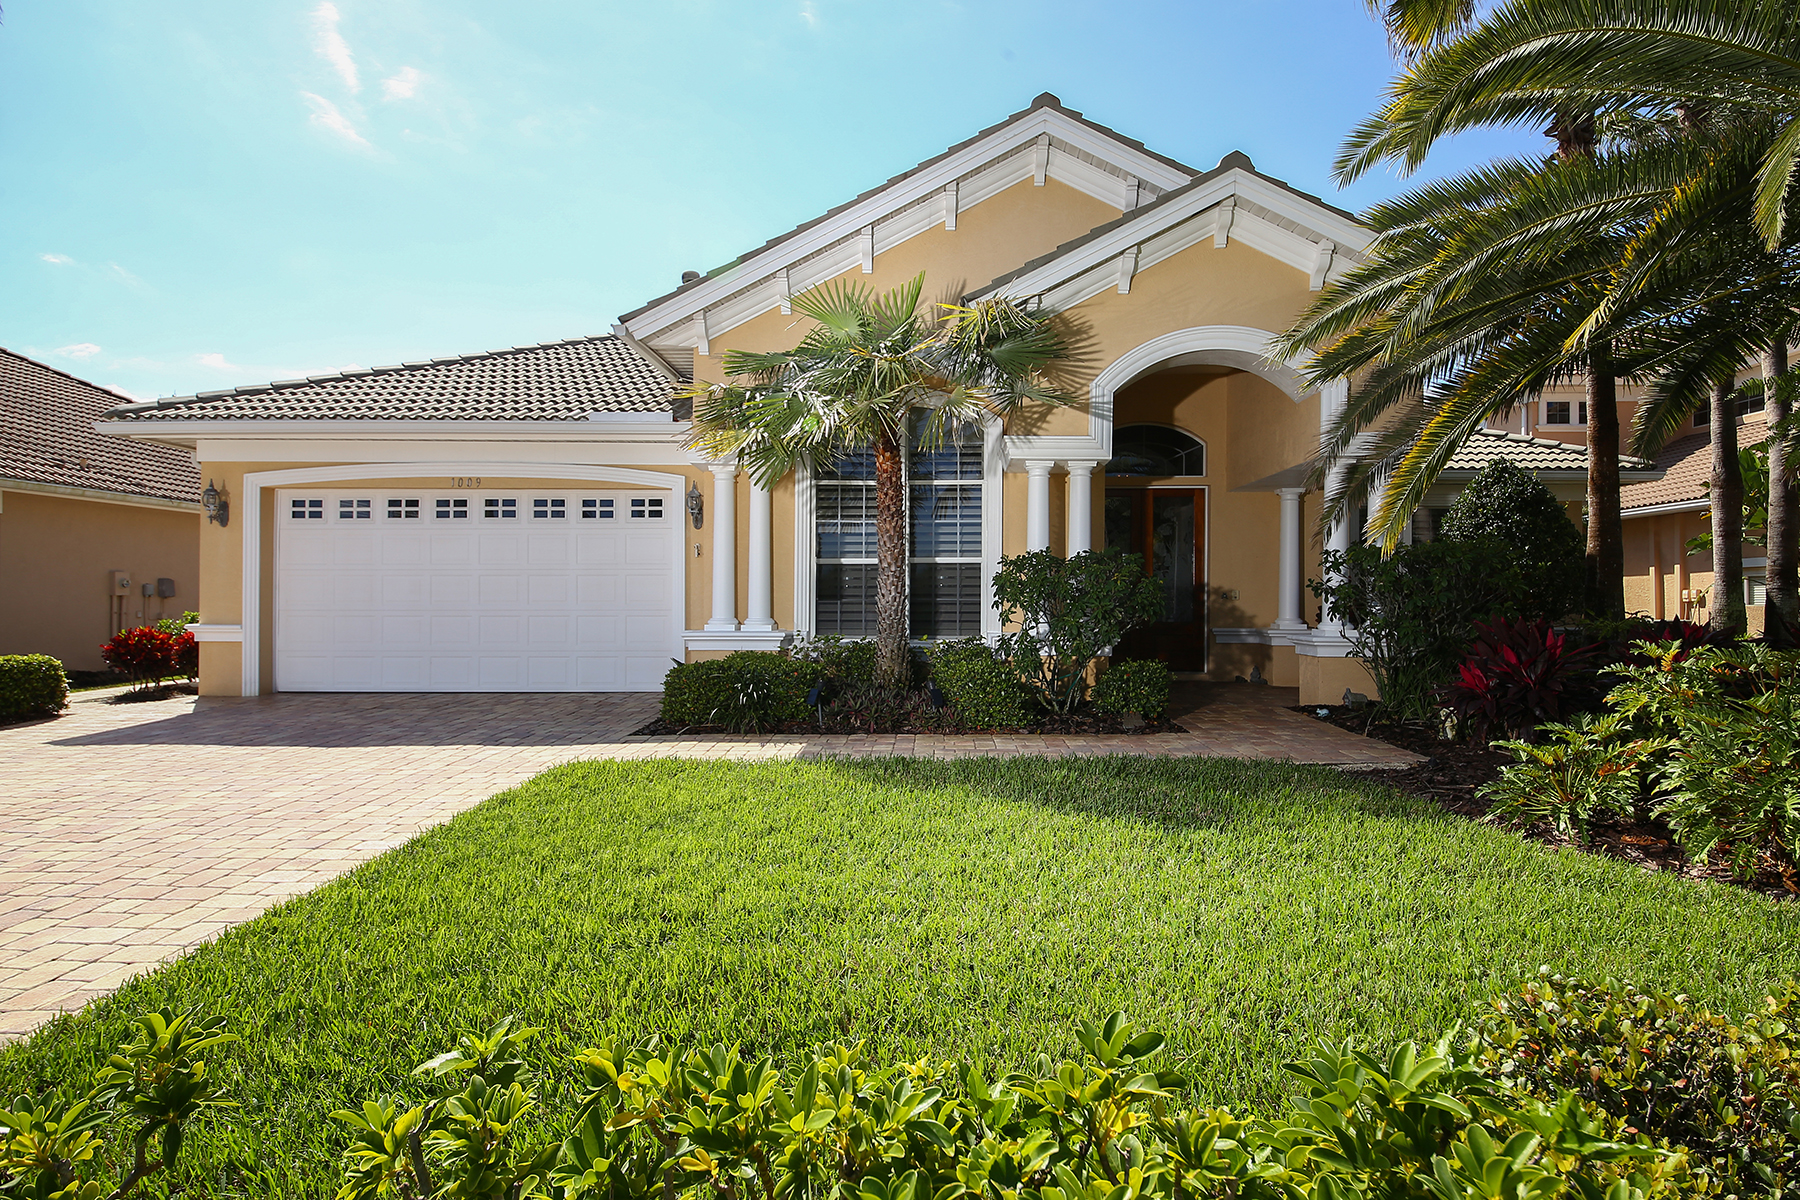 Single Family Homes for Sale at NORTHSHORT AT RIVIERA DUNES 1009 3rd St E Palmetto, Florida 34221 United States